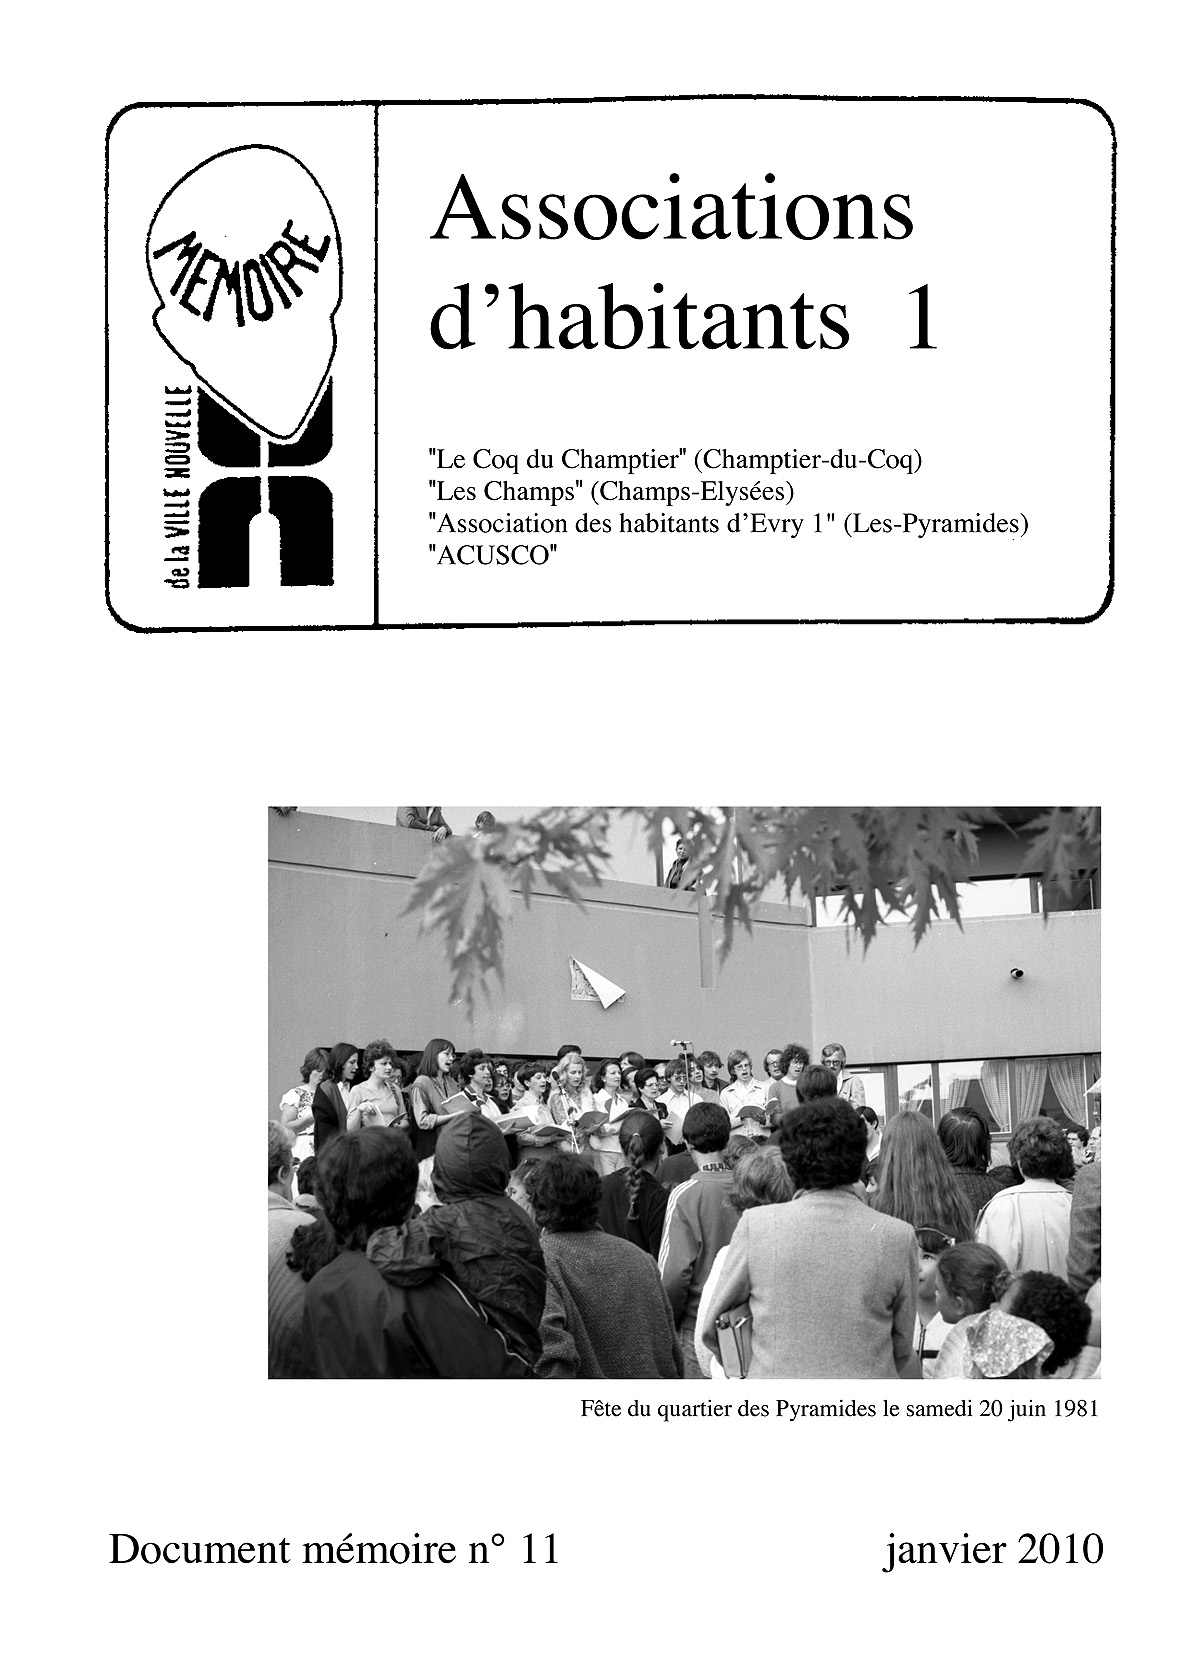 Document mémoire n°11 (2010)